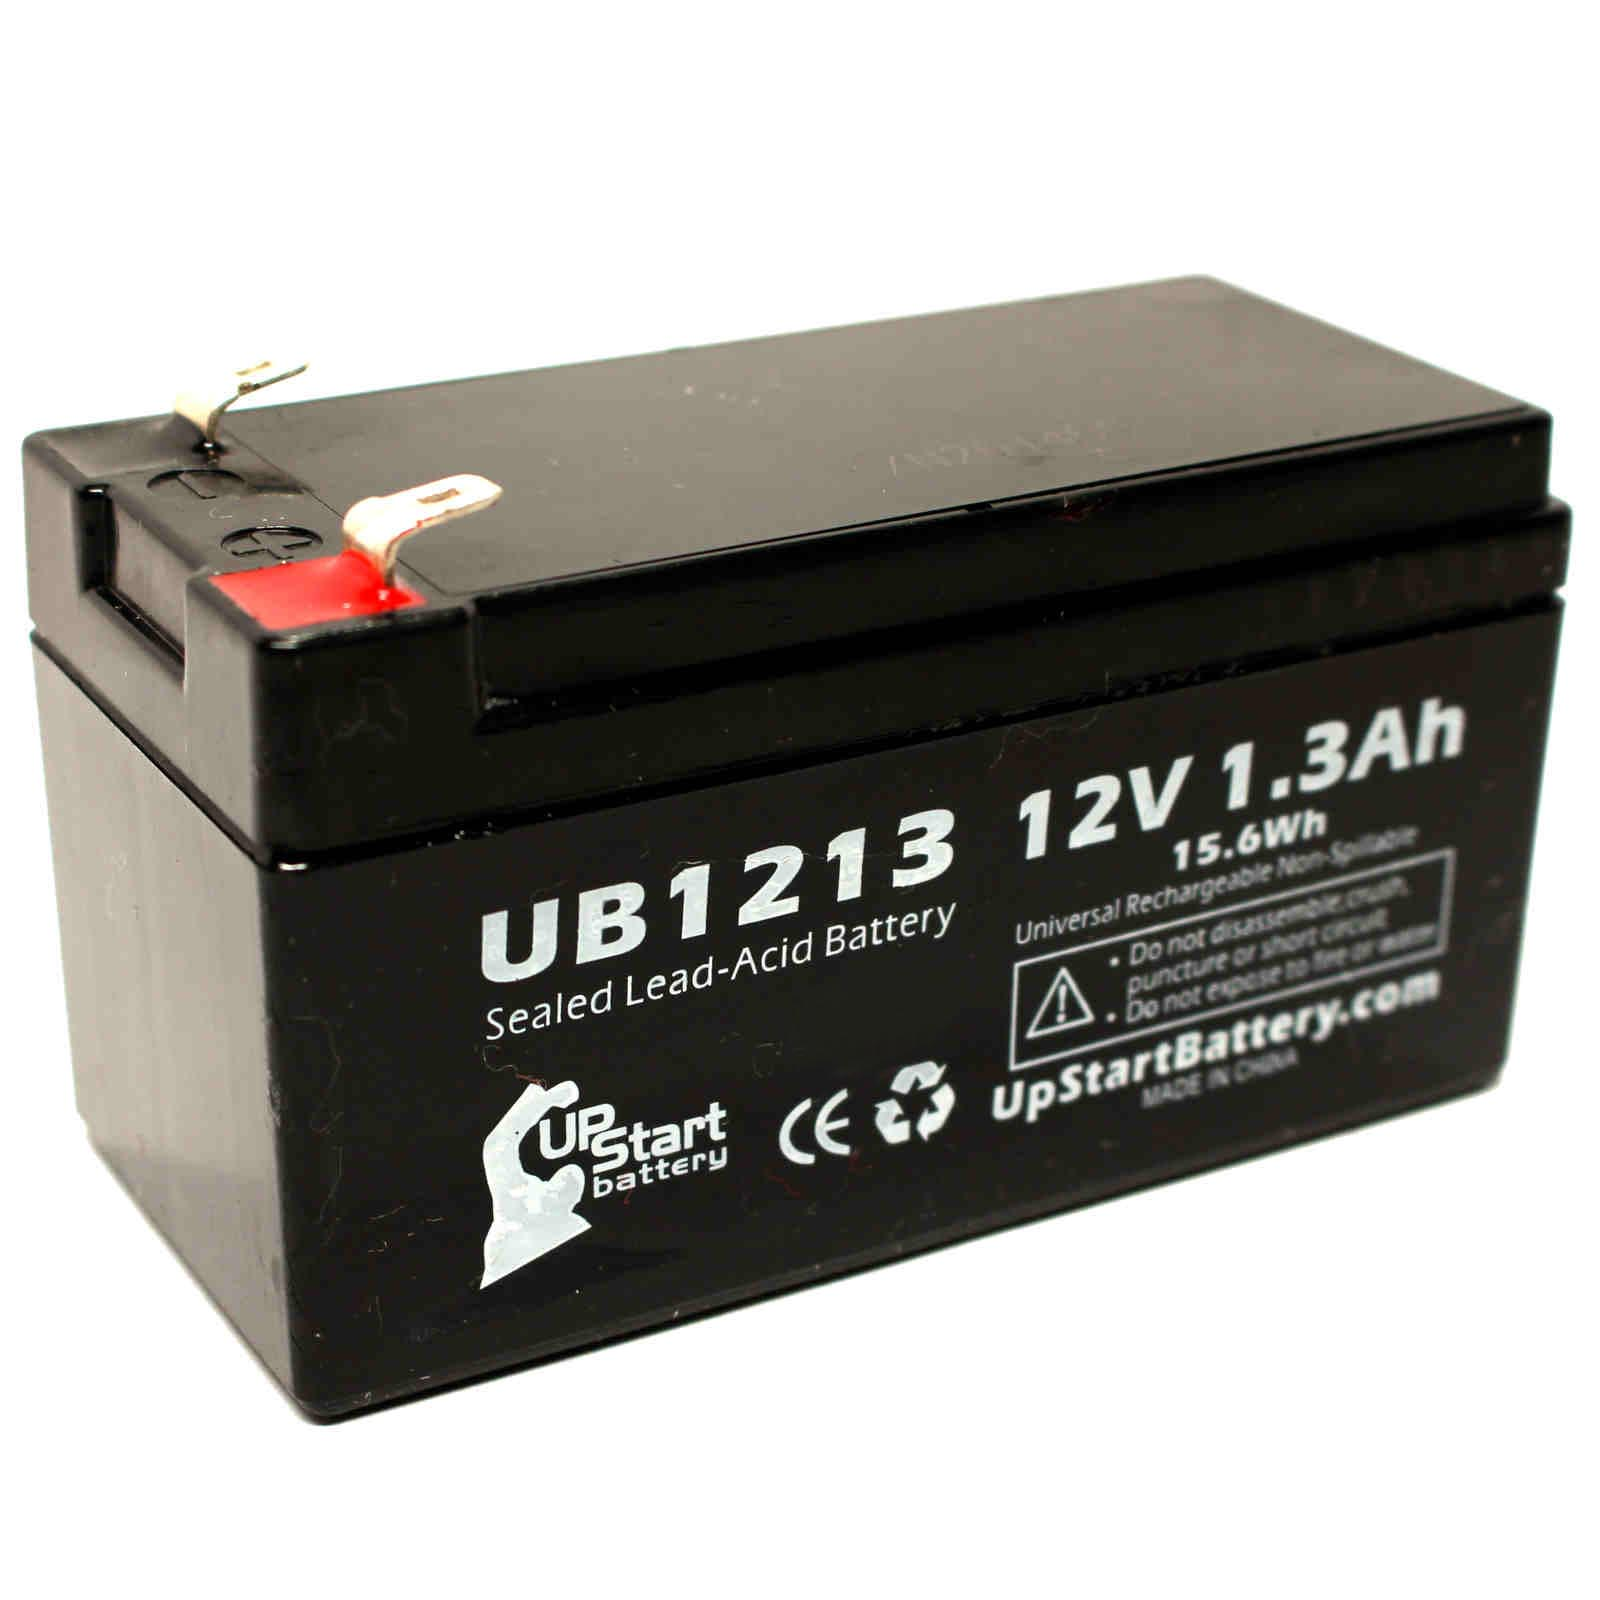 2x Pack - Zeus PC1.3-12 Battery Replacement - UB1213 Universal Sealed Lead Acid Battery (12V, 1.3Ah, 1300mAh, F1 Terminal, AGM, SLA) - Includes 4 F1 to F2 Terminal Adapters - image 1 of 4